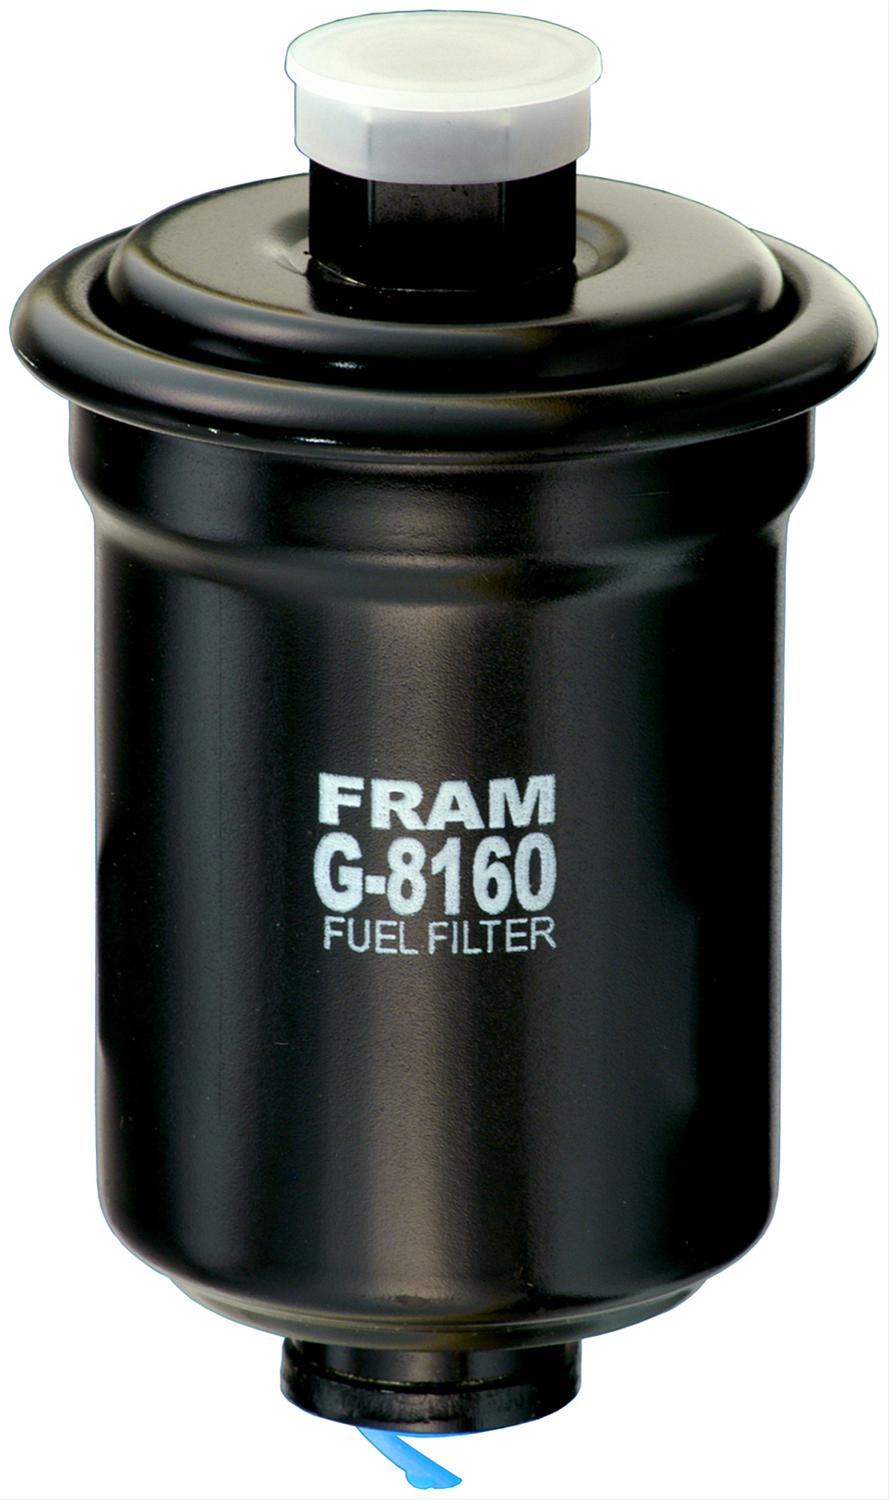 fram fuel filter inline black steel housing paper element. Black Bedroom Furniture Sets. Home Design Ideas